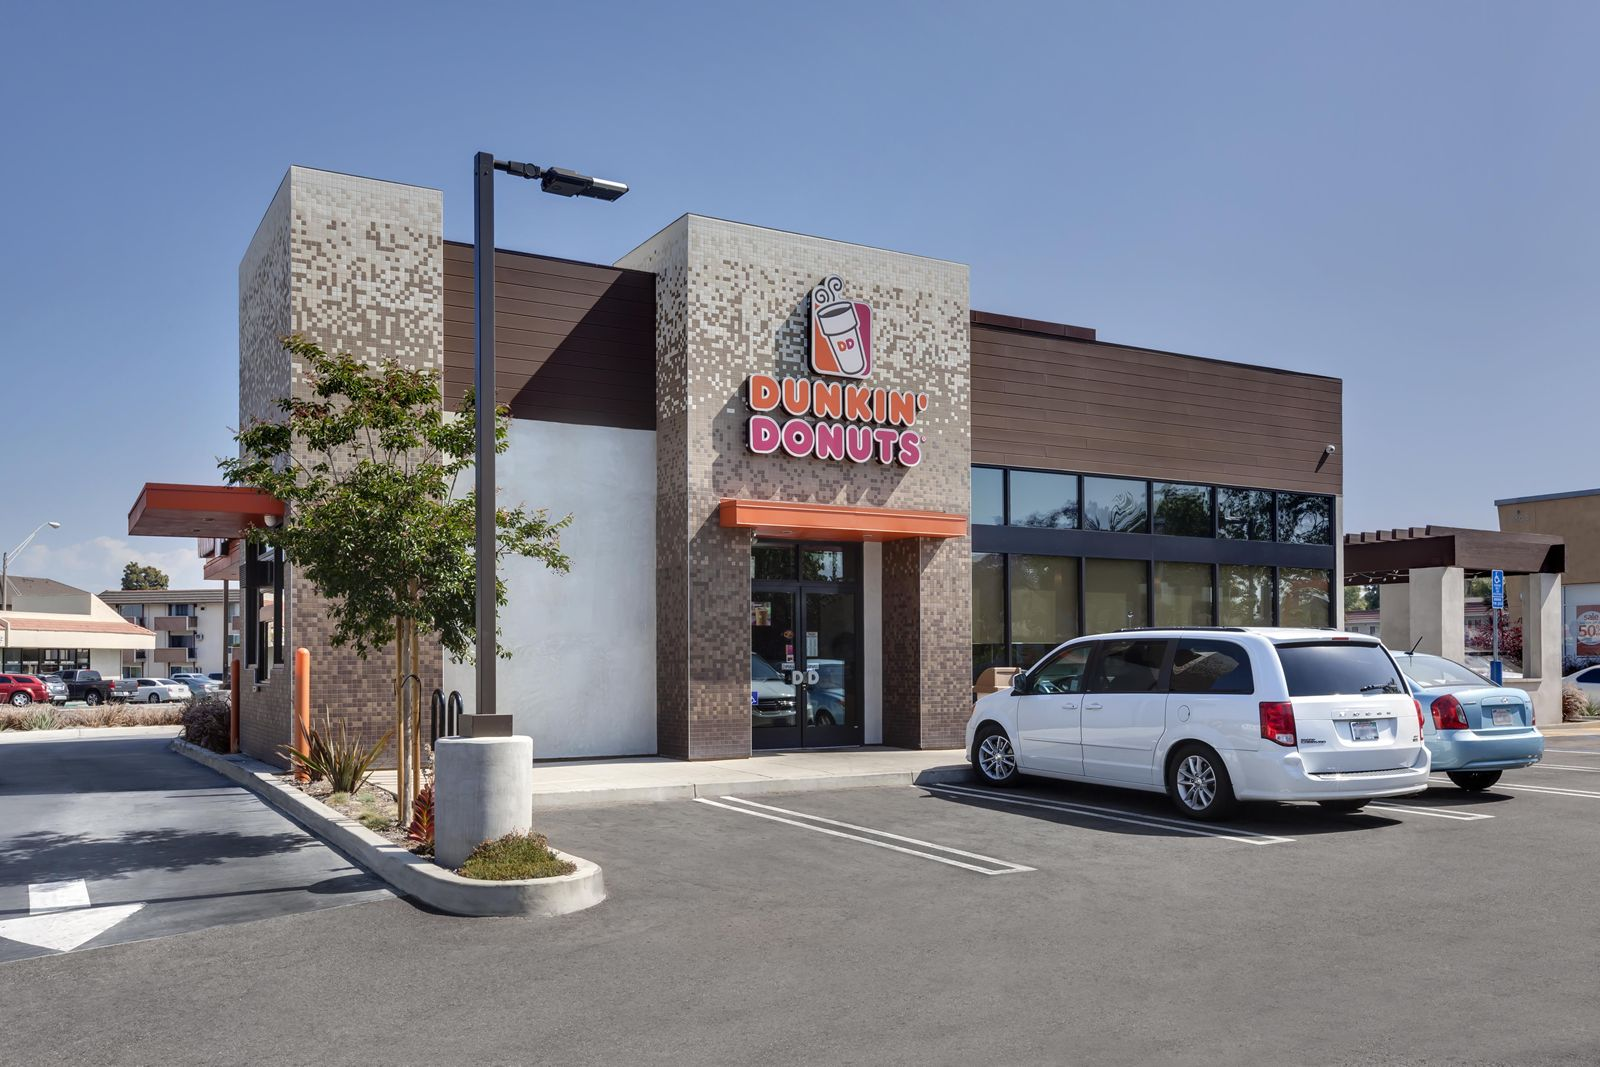 Dunkin' Donuts Announces Plans For Five New Restaurants Throughout North Carolina With New And Existing Franchisees